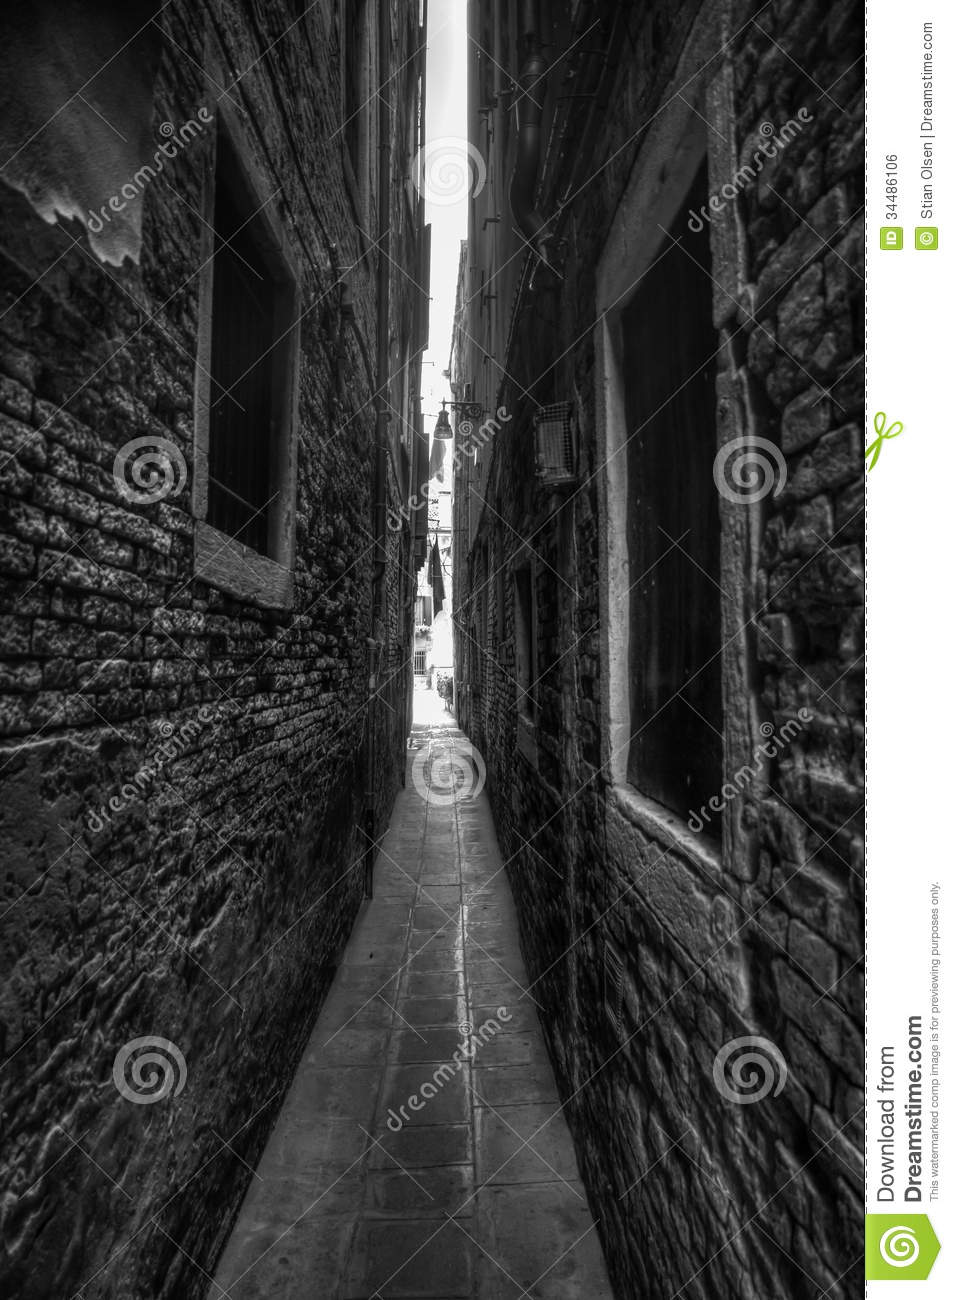 The alleyway was narrow and littered with trash.' | Fight or ...